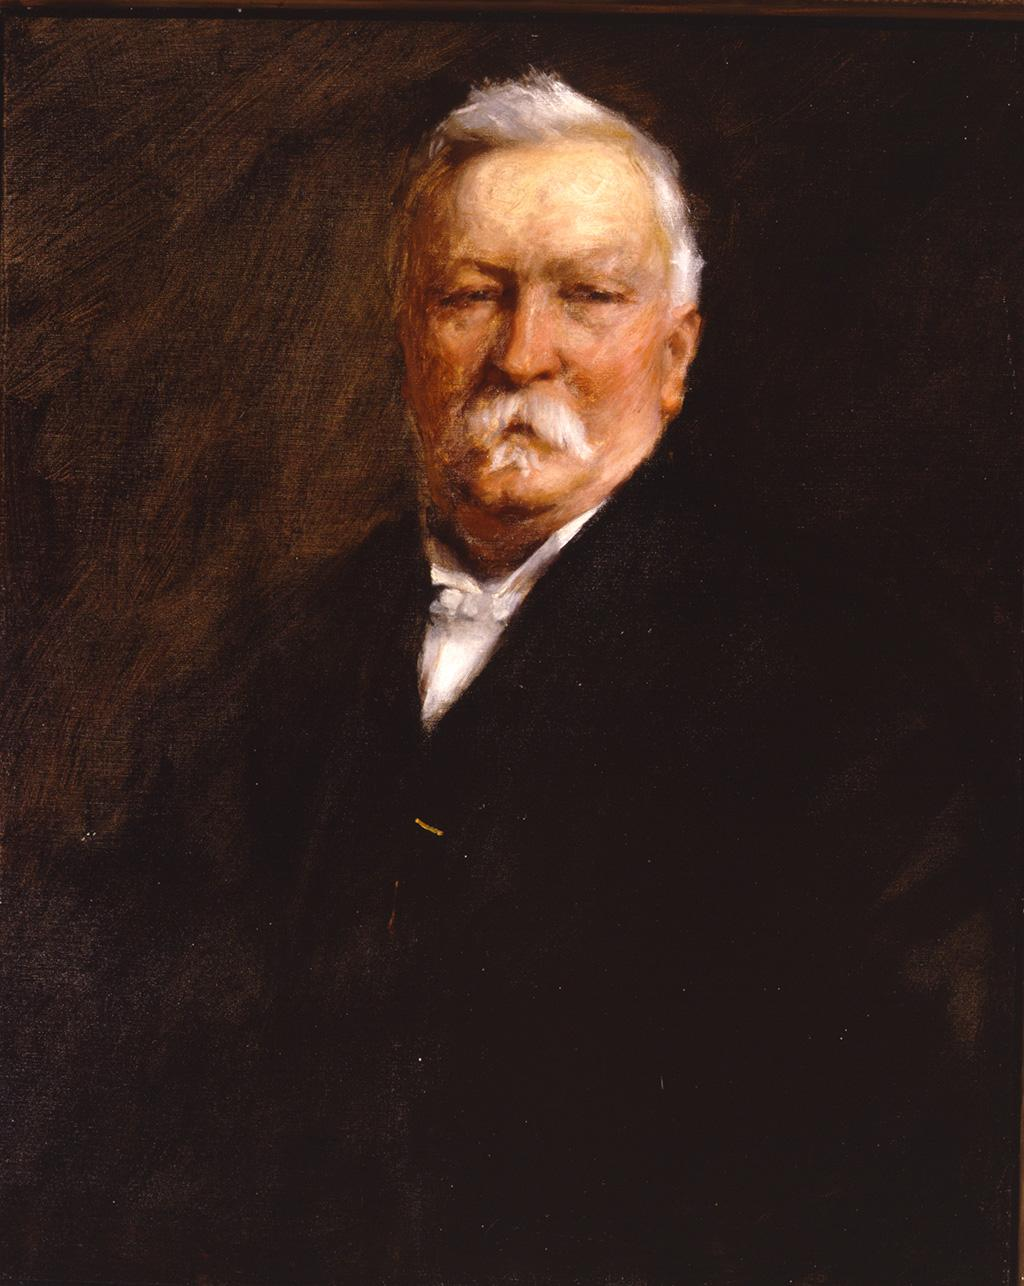 Dr Benjamin Taylor by William Merritt Chase, 1902